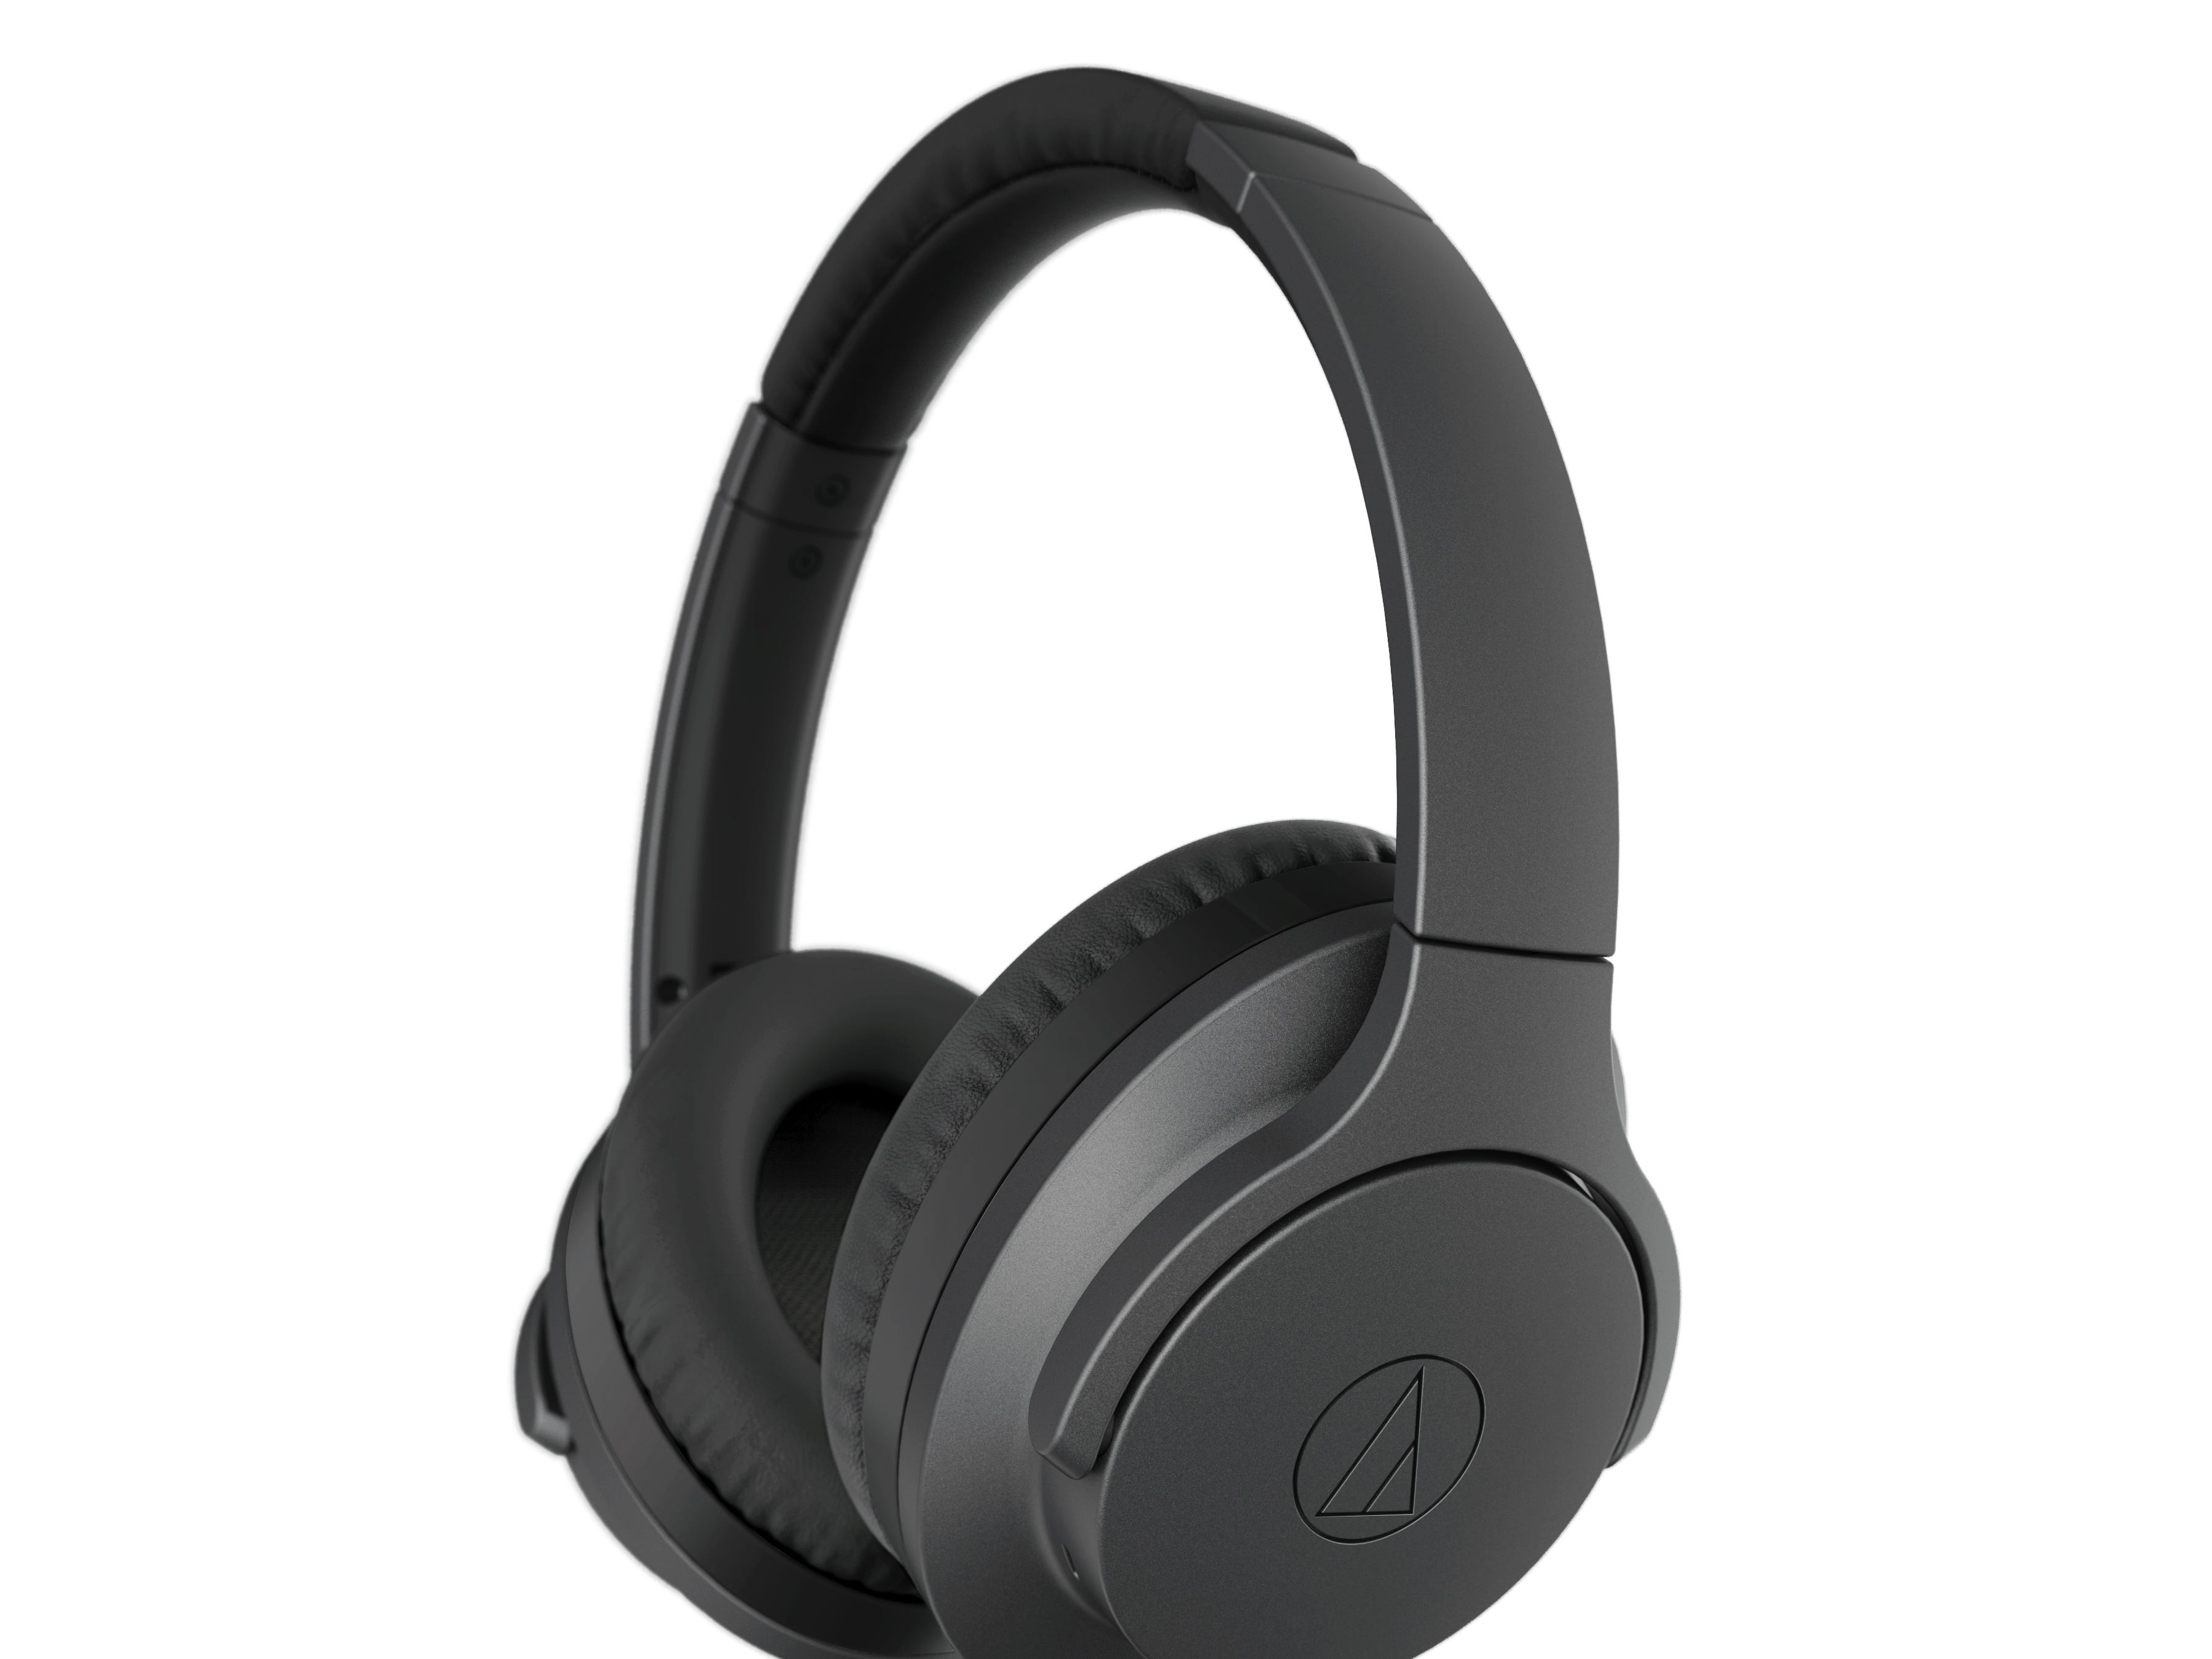 Audio-Technica QuietPoint ATH-ANC700BT wireless noise-cancelling headphones, $199.